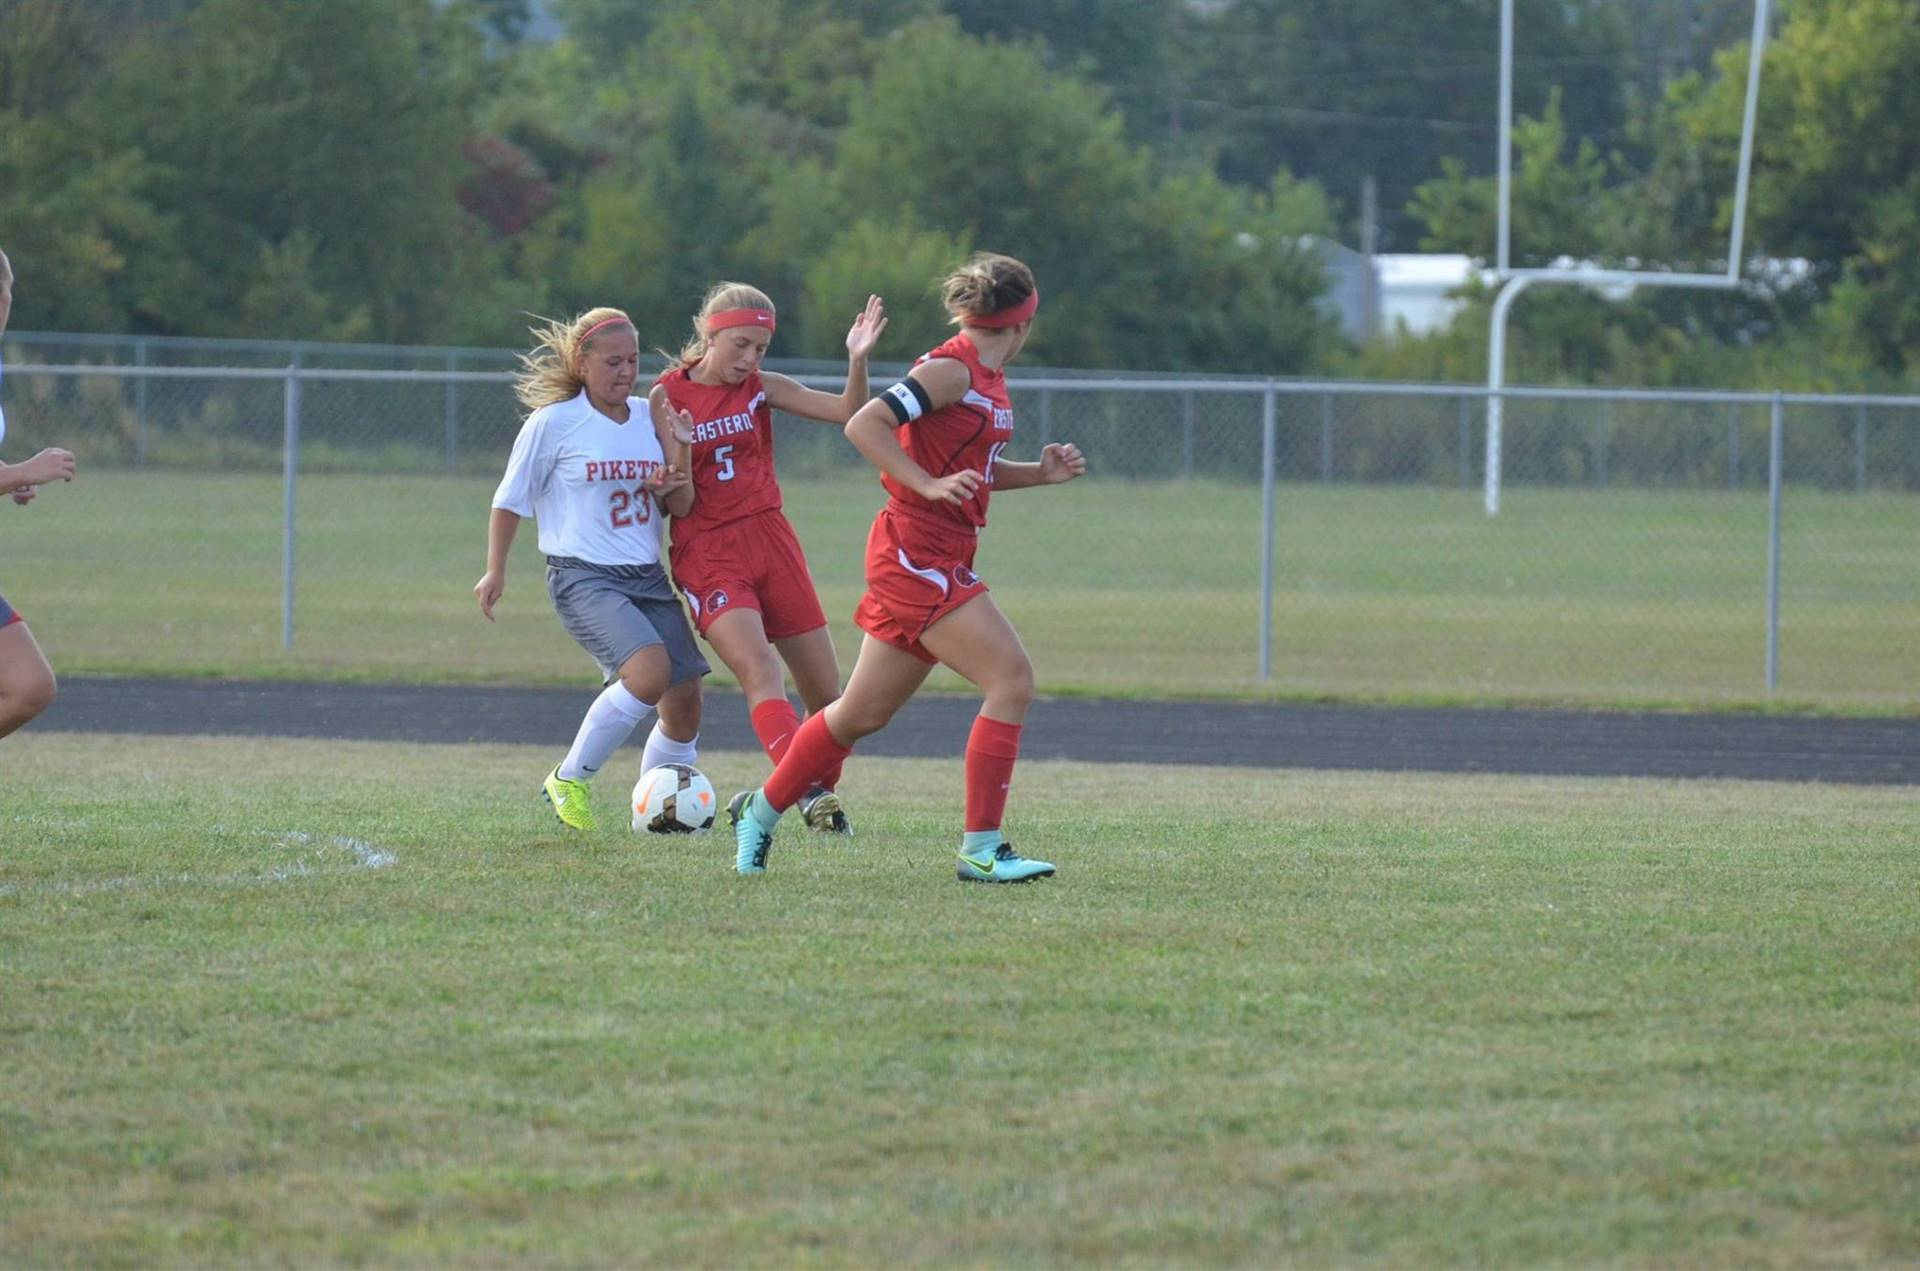 Breanna Eick fighting for the ball against one of Eastern Brown's players.